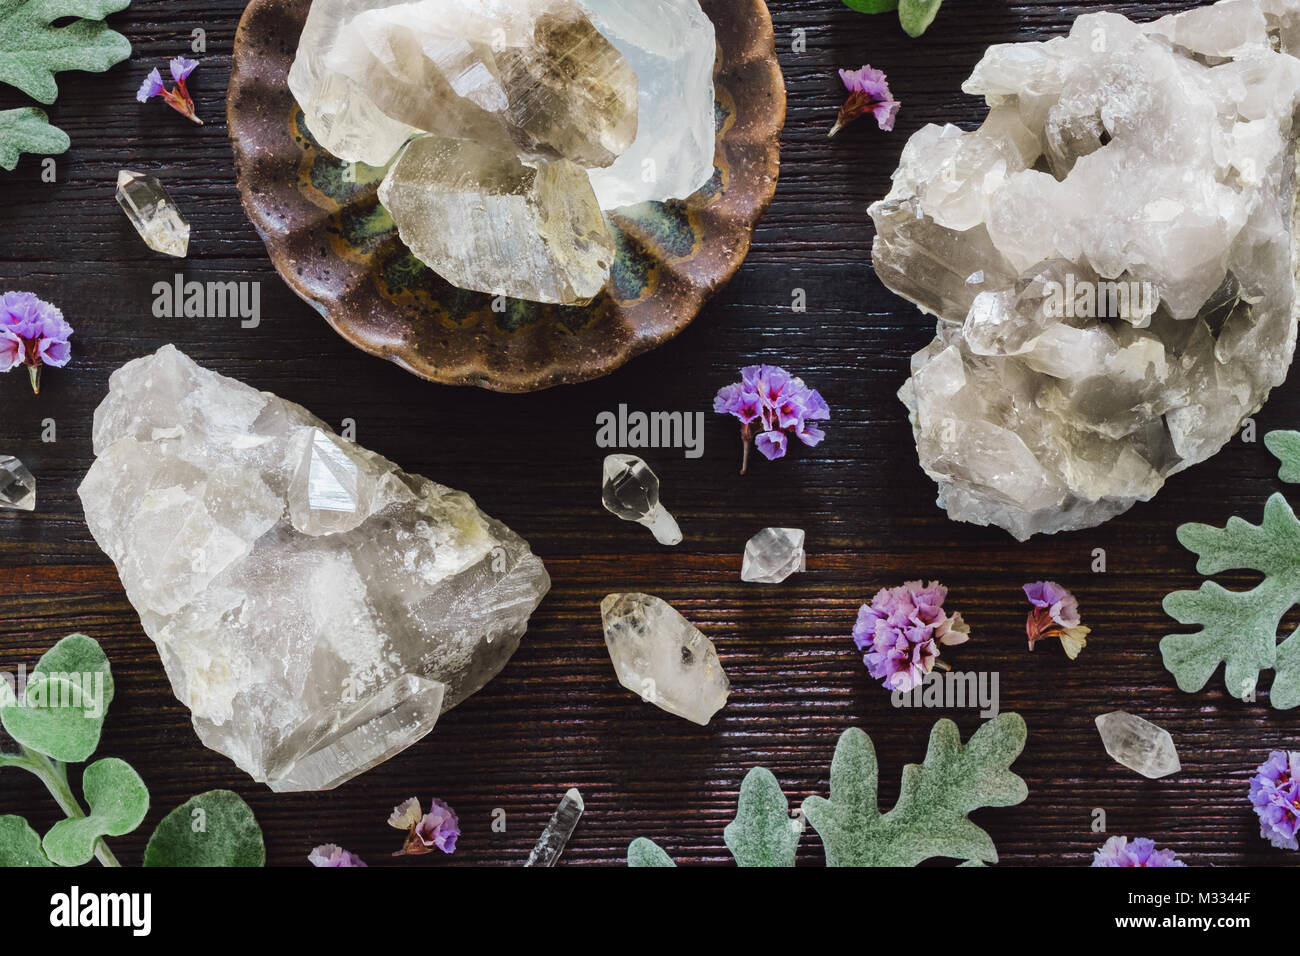 Quartz Crystal Clusters with Quartz Points on Dark Table - Stock Image